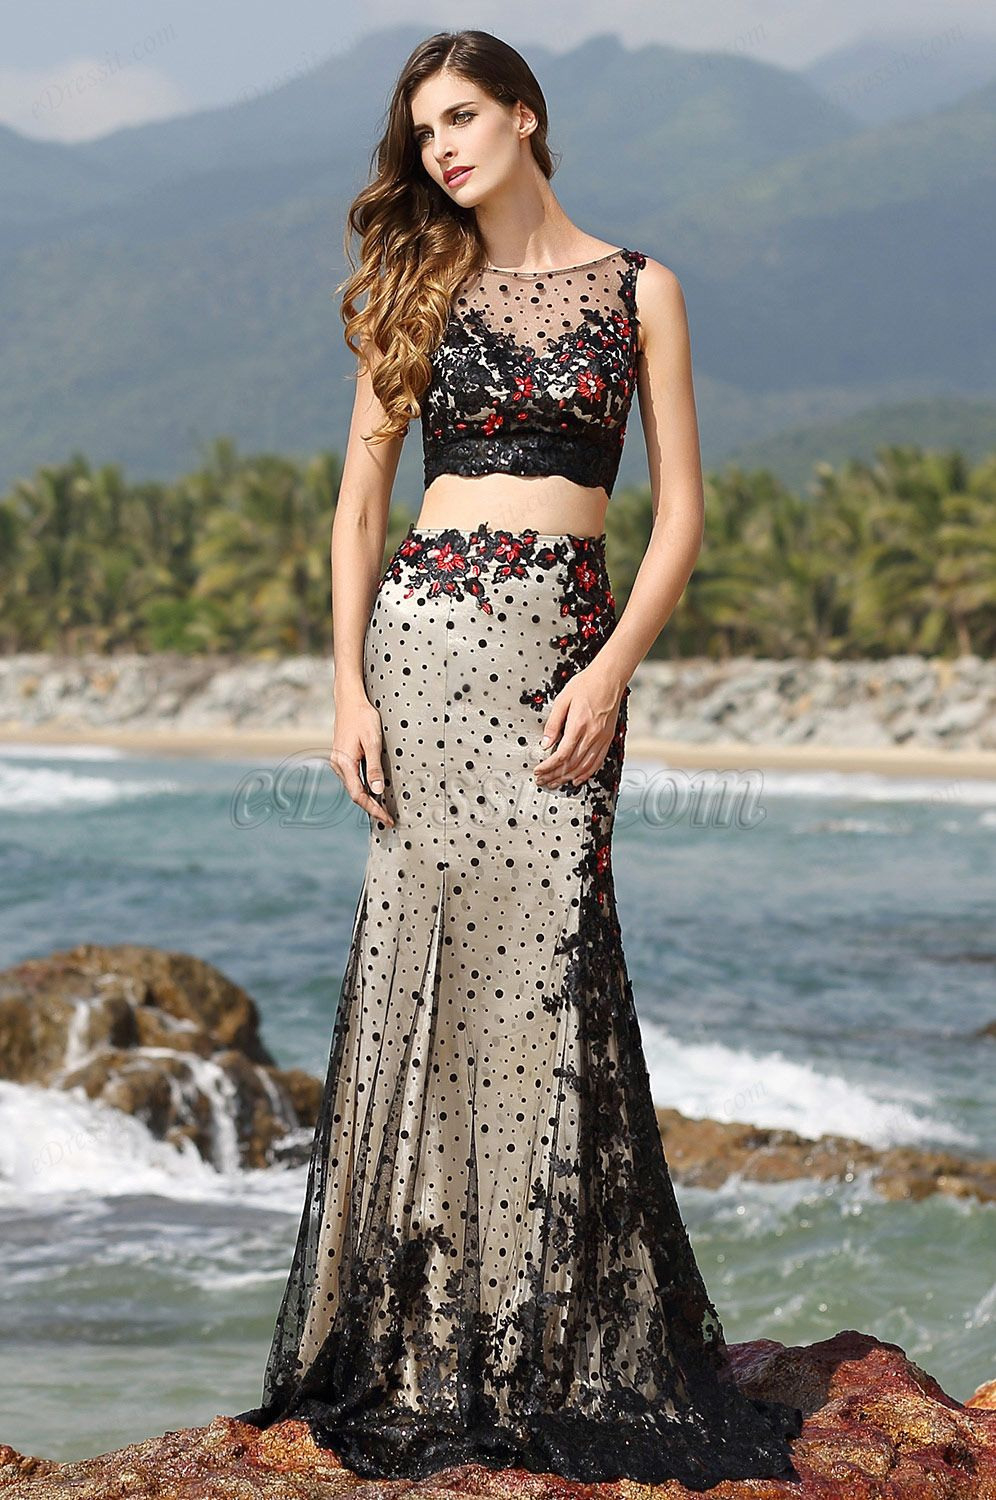 Illusion Sweetheart Neck Two Piece Black Evening Gown Prom